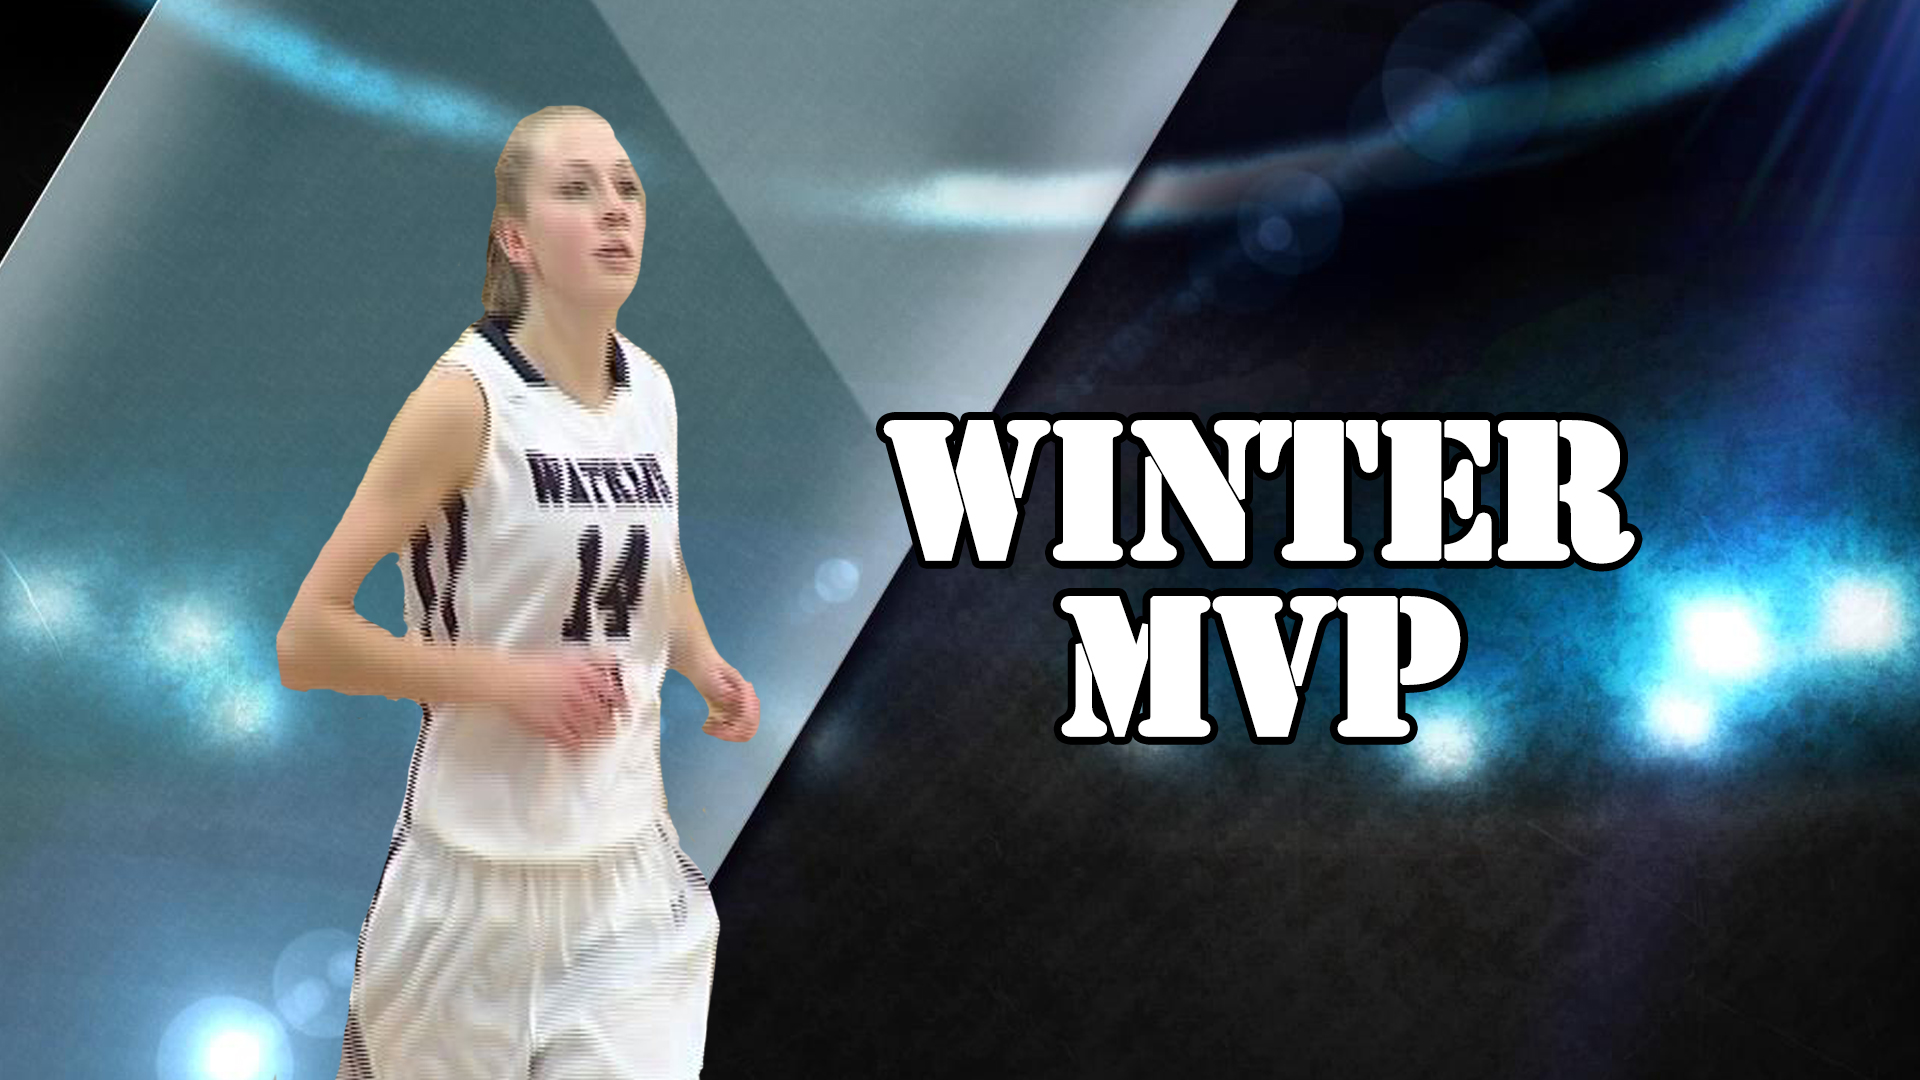 Winter MVP Pike monitor GFX_1459893391845.jpg